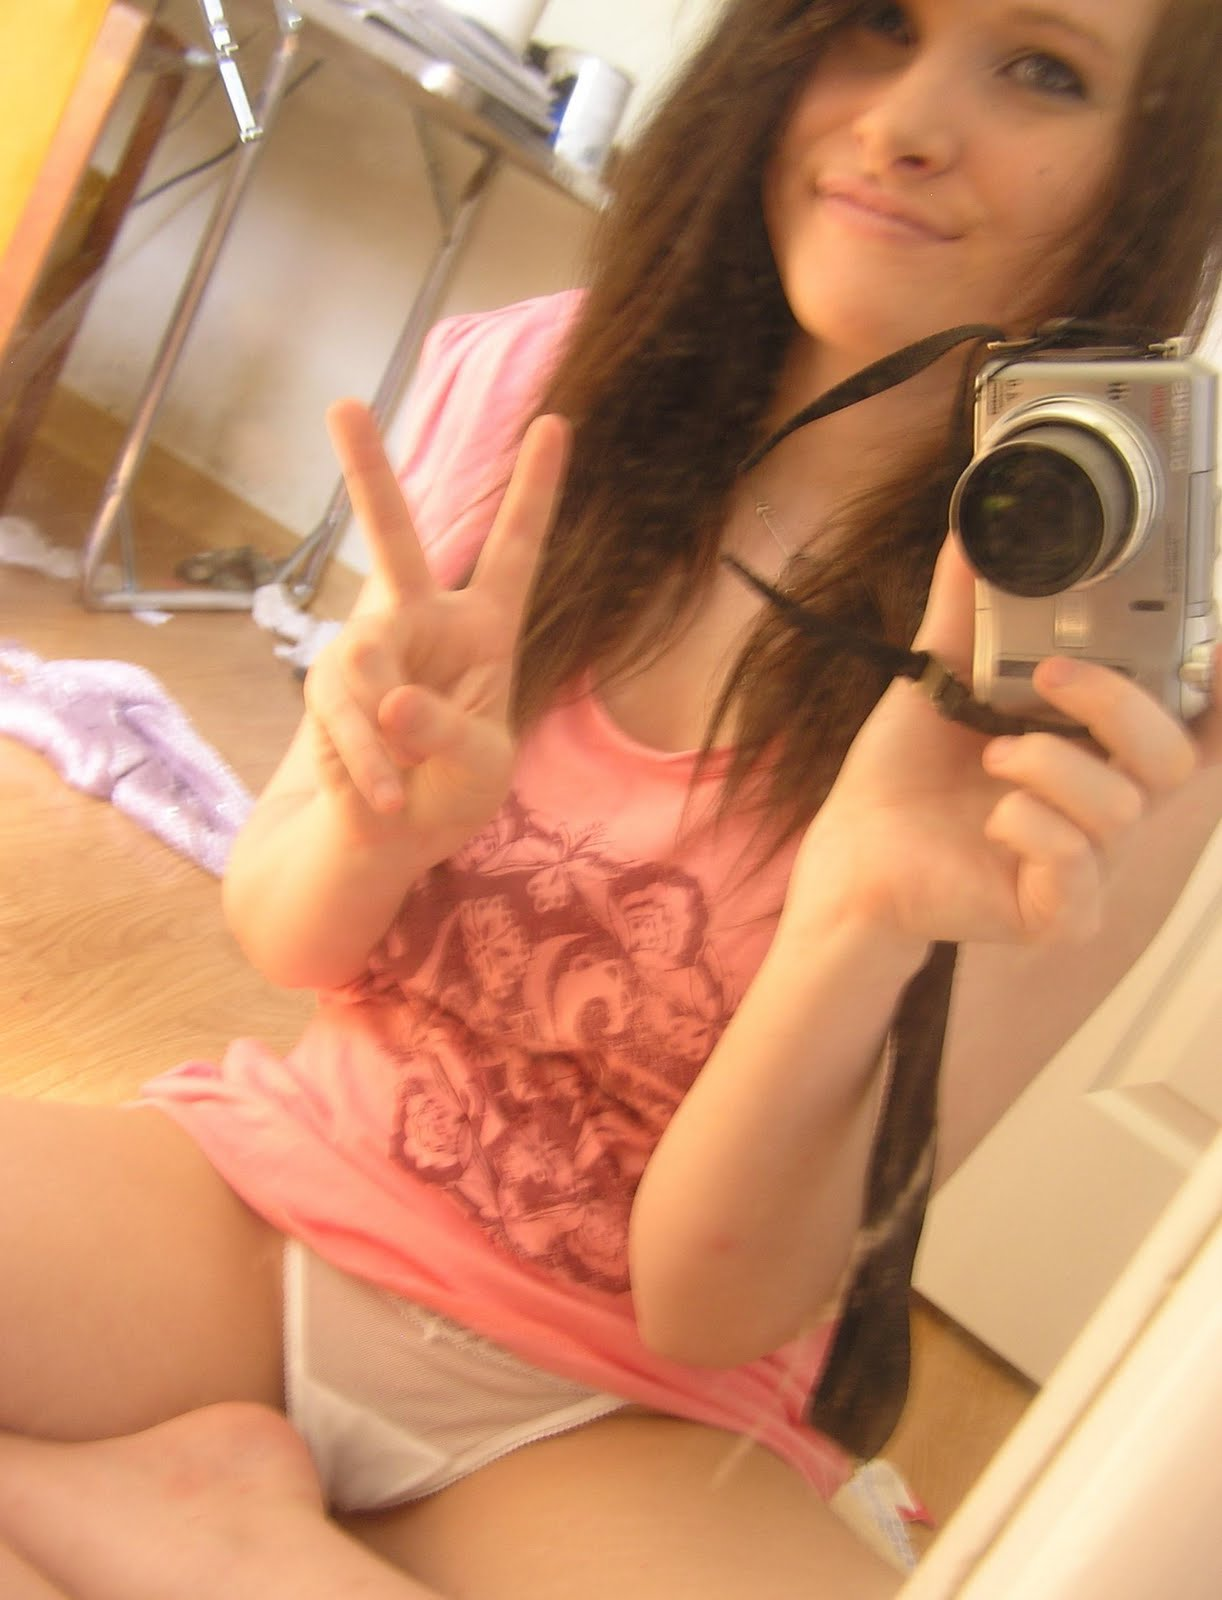 Cute Teen Girl Self Shot Bathroom